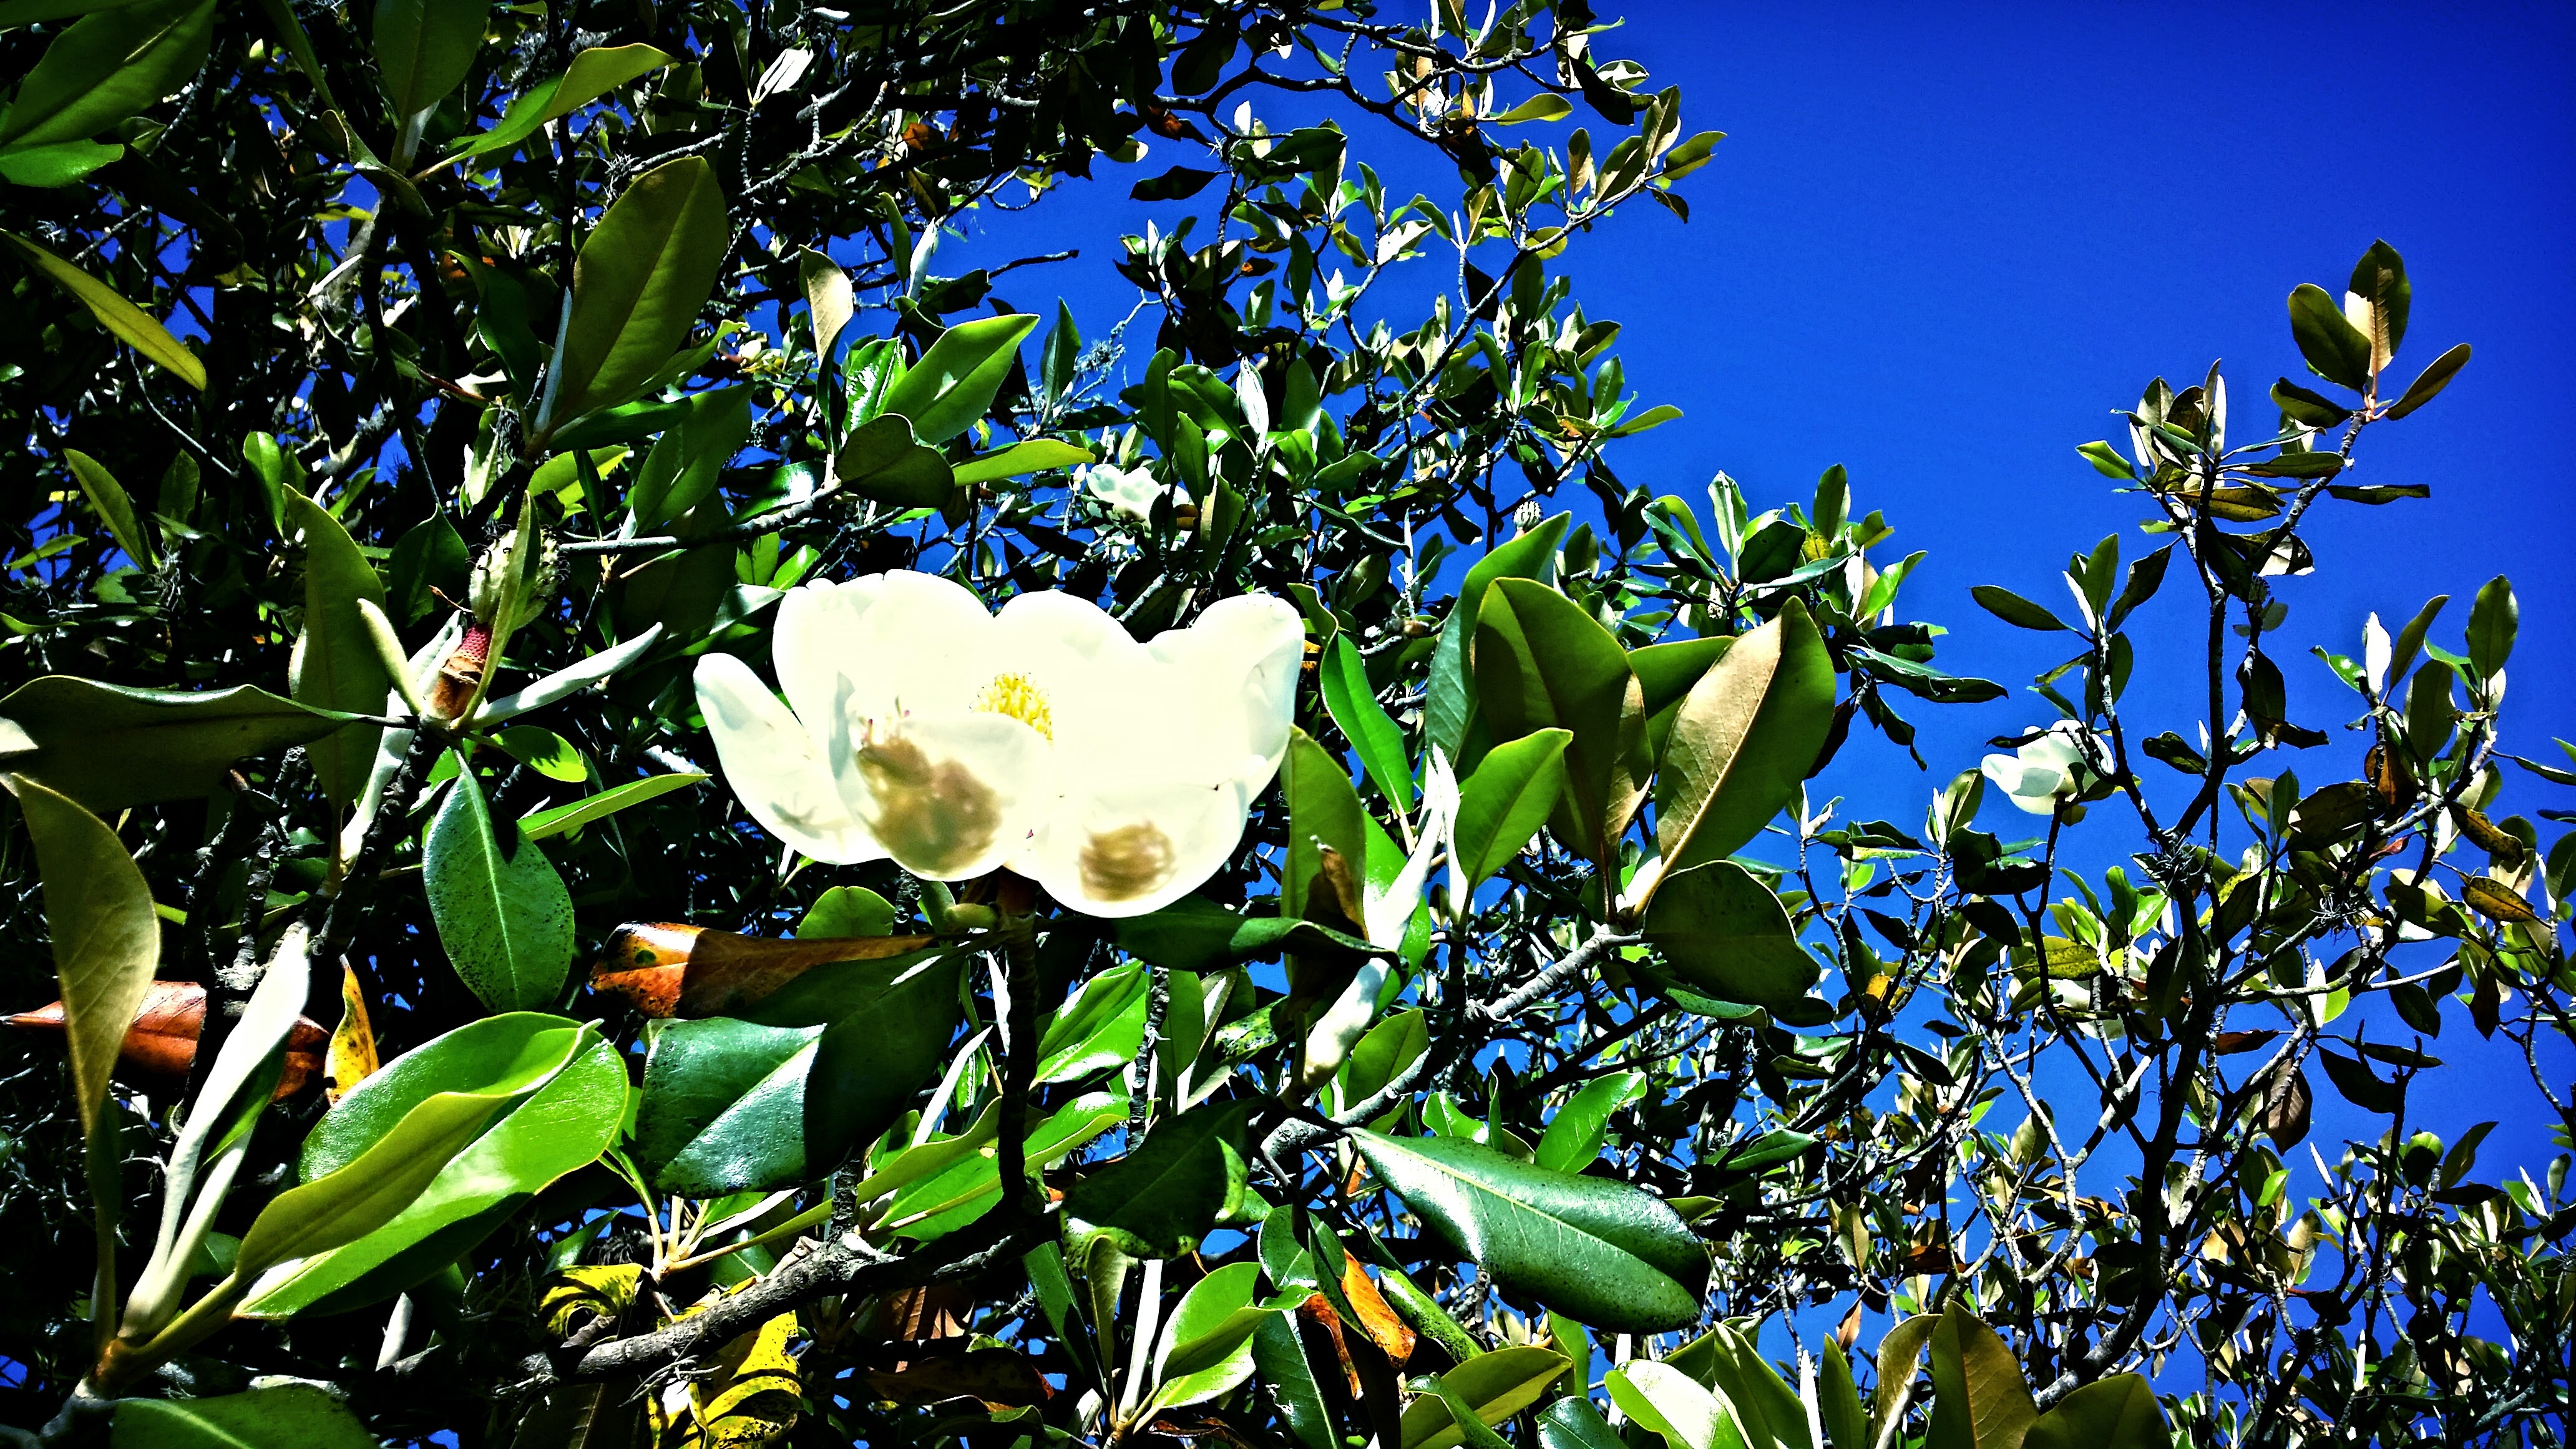 Magnolia tree in front of St. Bart's Hempstead